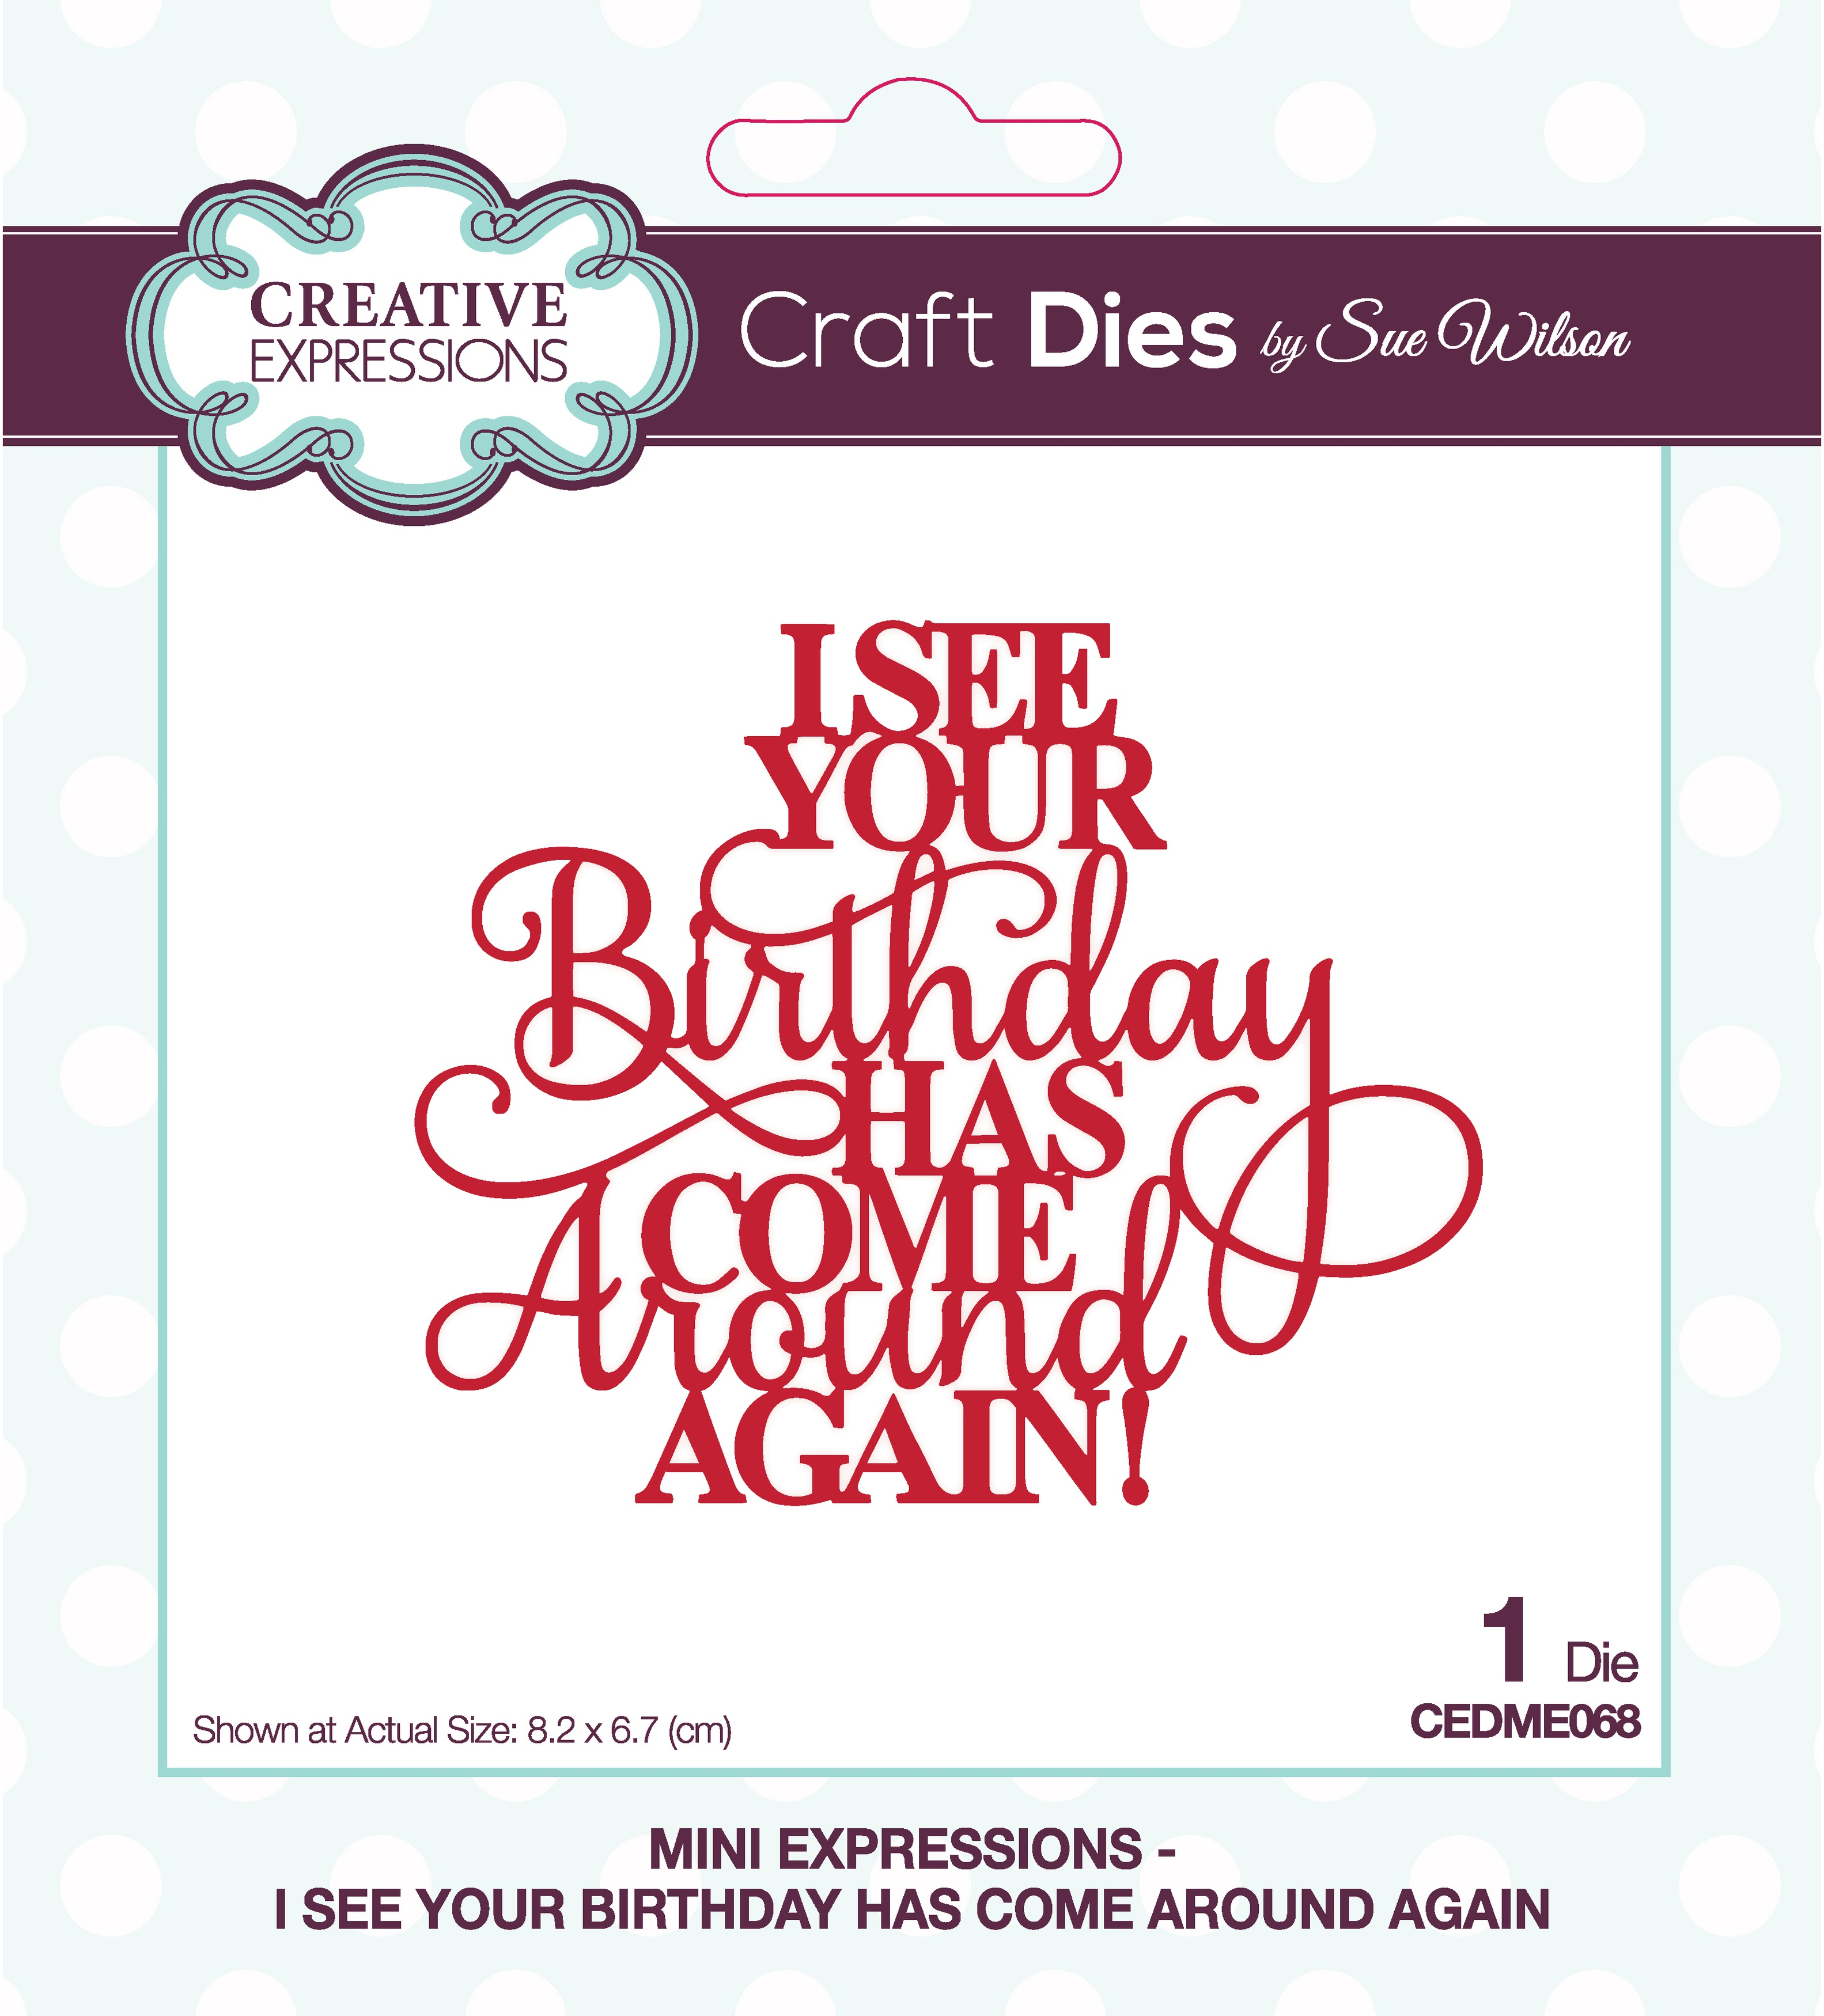 Creative Expressions Craft Dies By Sue Wilson-Mini Expressions- I See Your Birth...